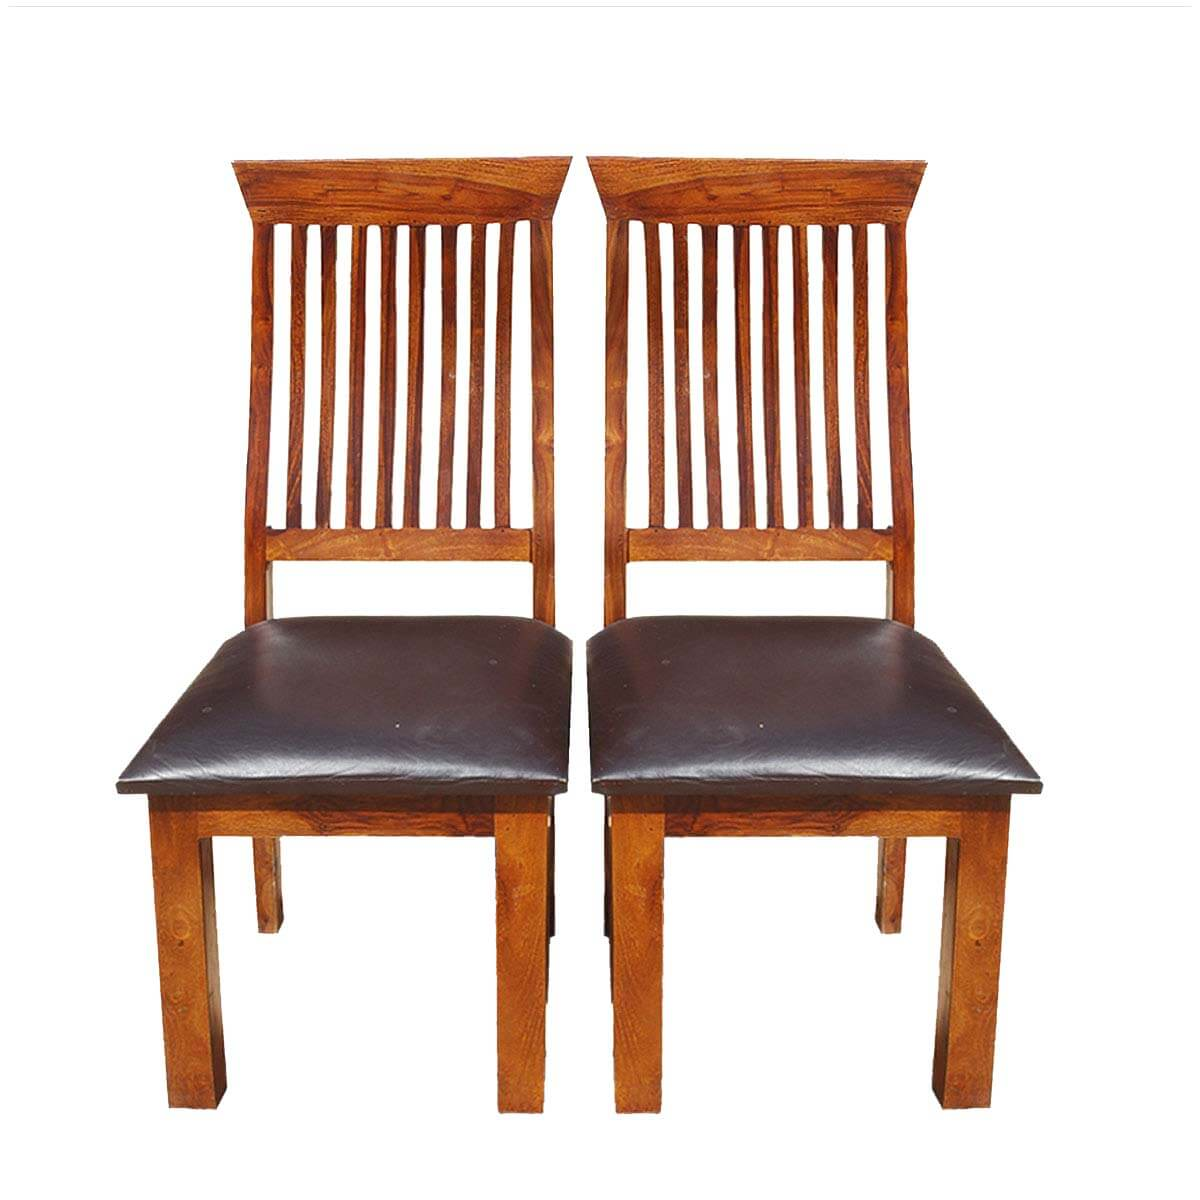 ergonomic chair settings steel shop near me solid wood and leather dining set of 2